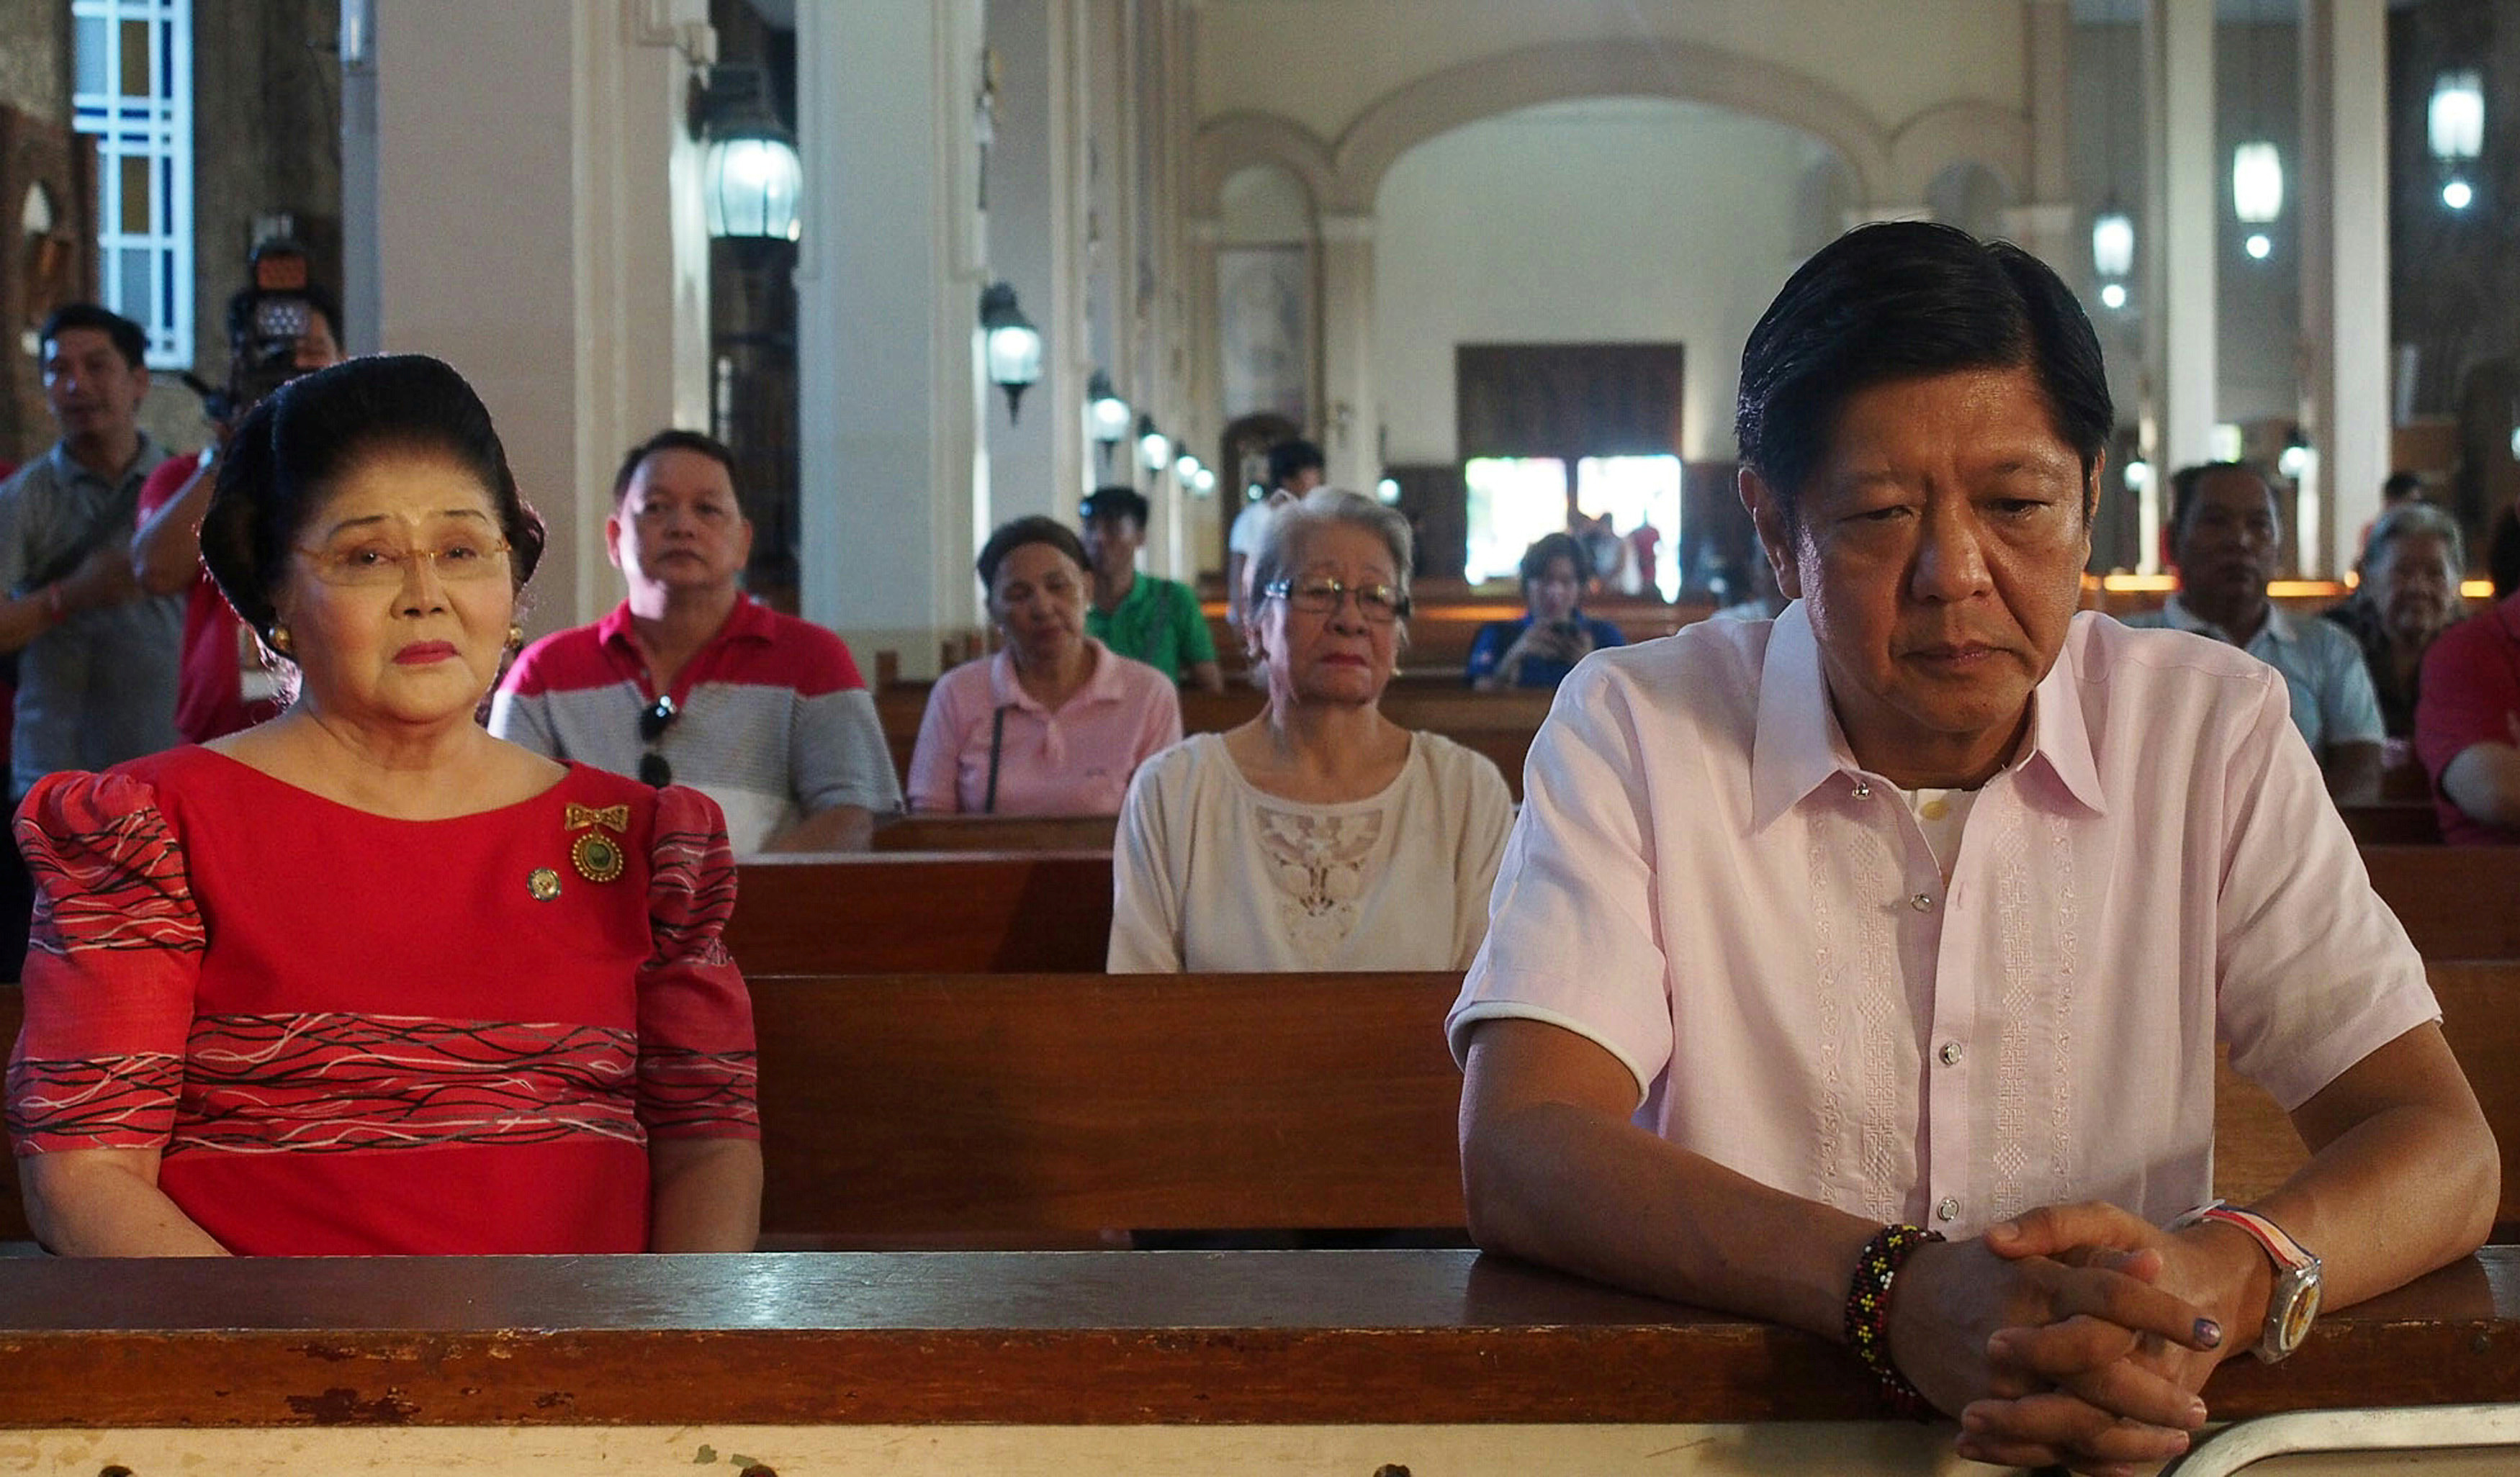 Philippine vice-presidential candidate Ferdinand  Bongbong  Marcos, attends a mass with his mother, former First Lady Imelda Marcos, in the Philippine town of Batac, in Ilocos Norte province, on May 9, 2016